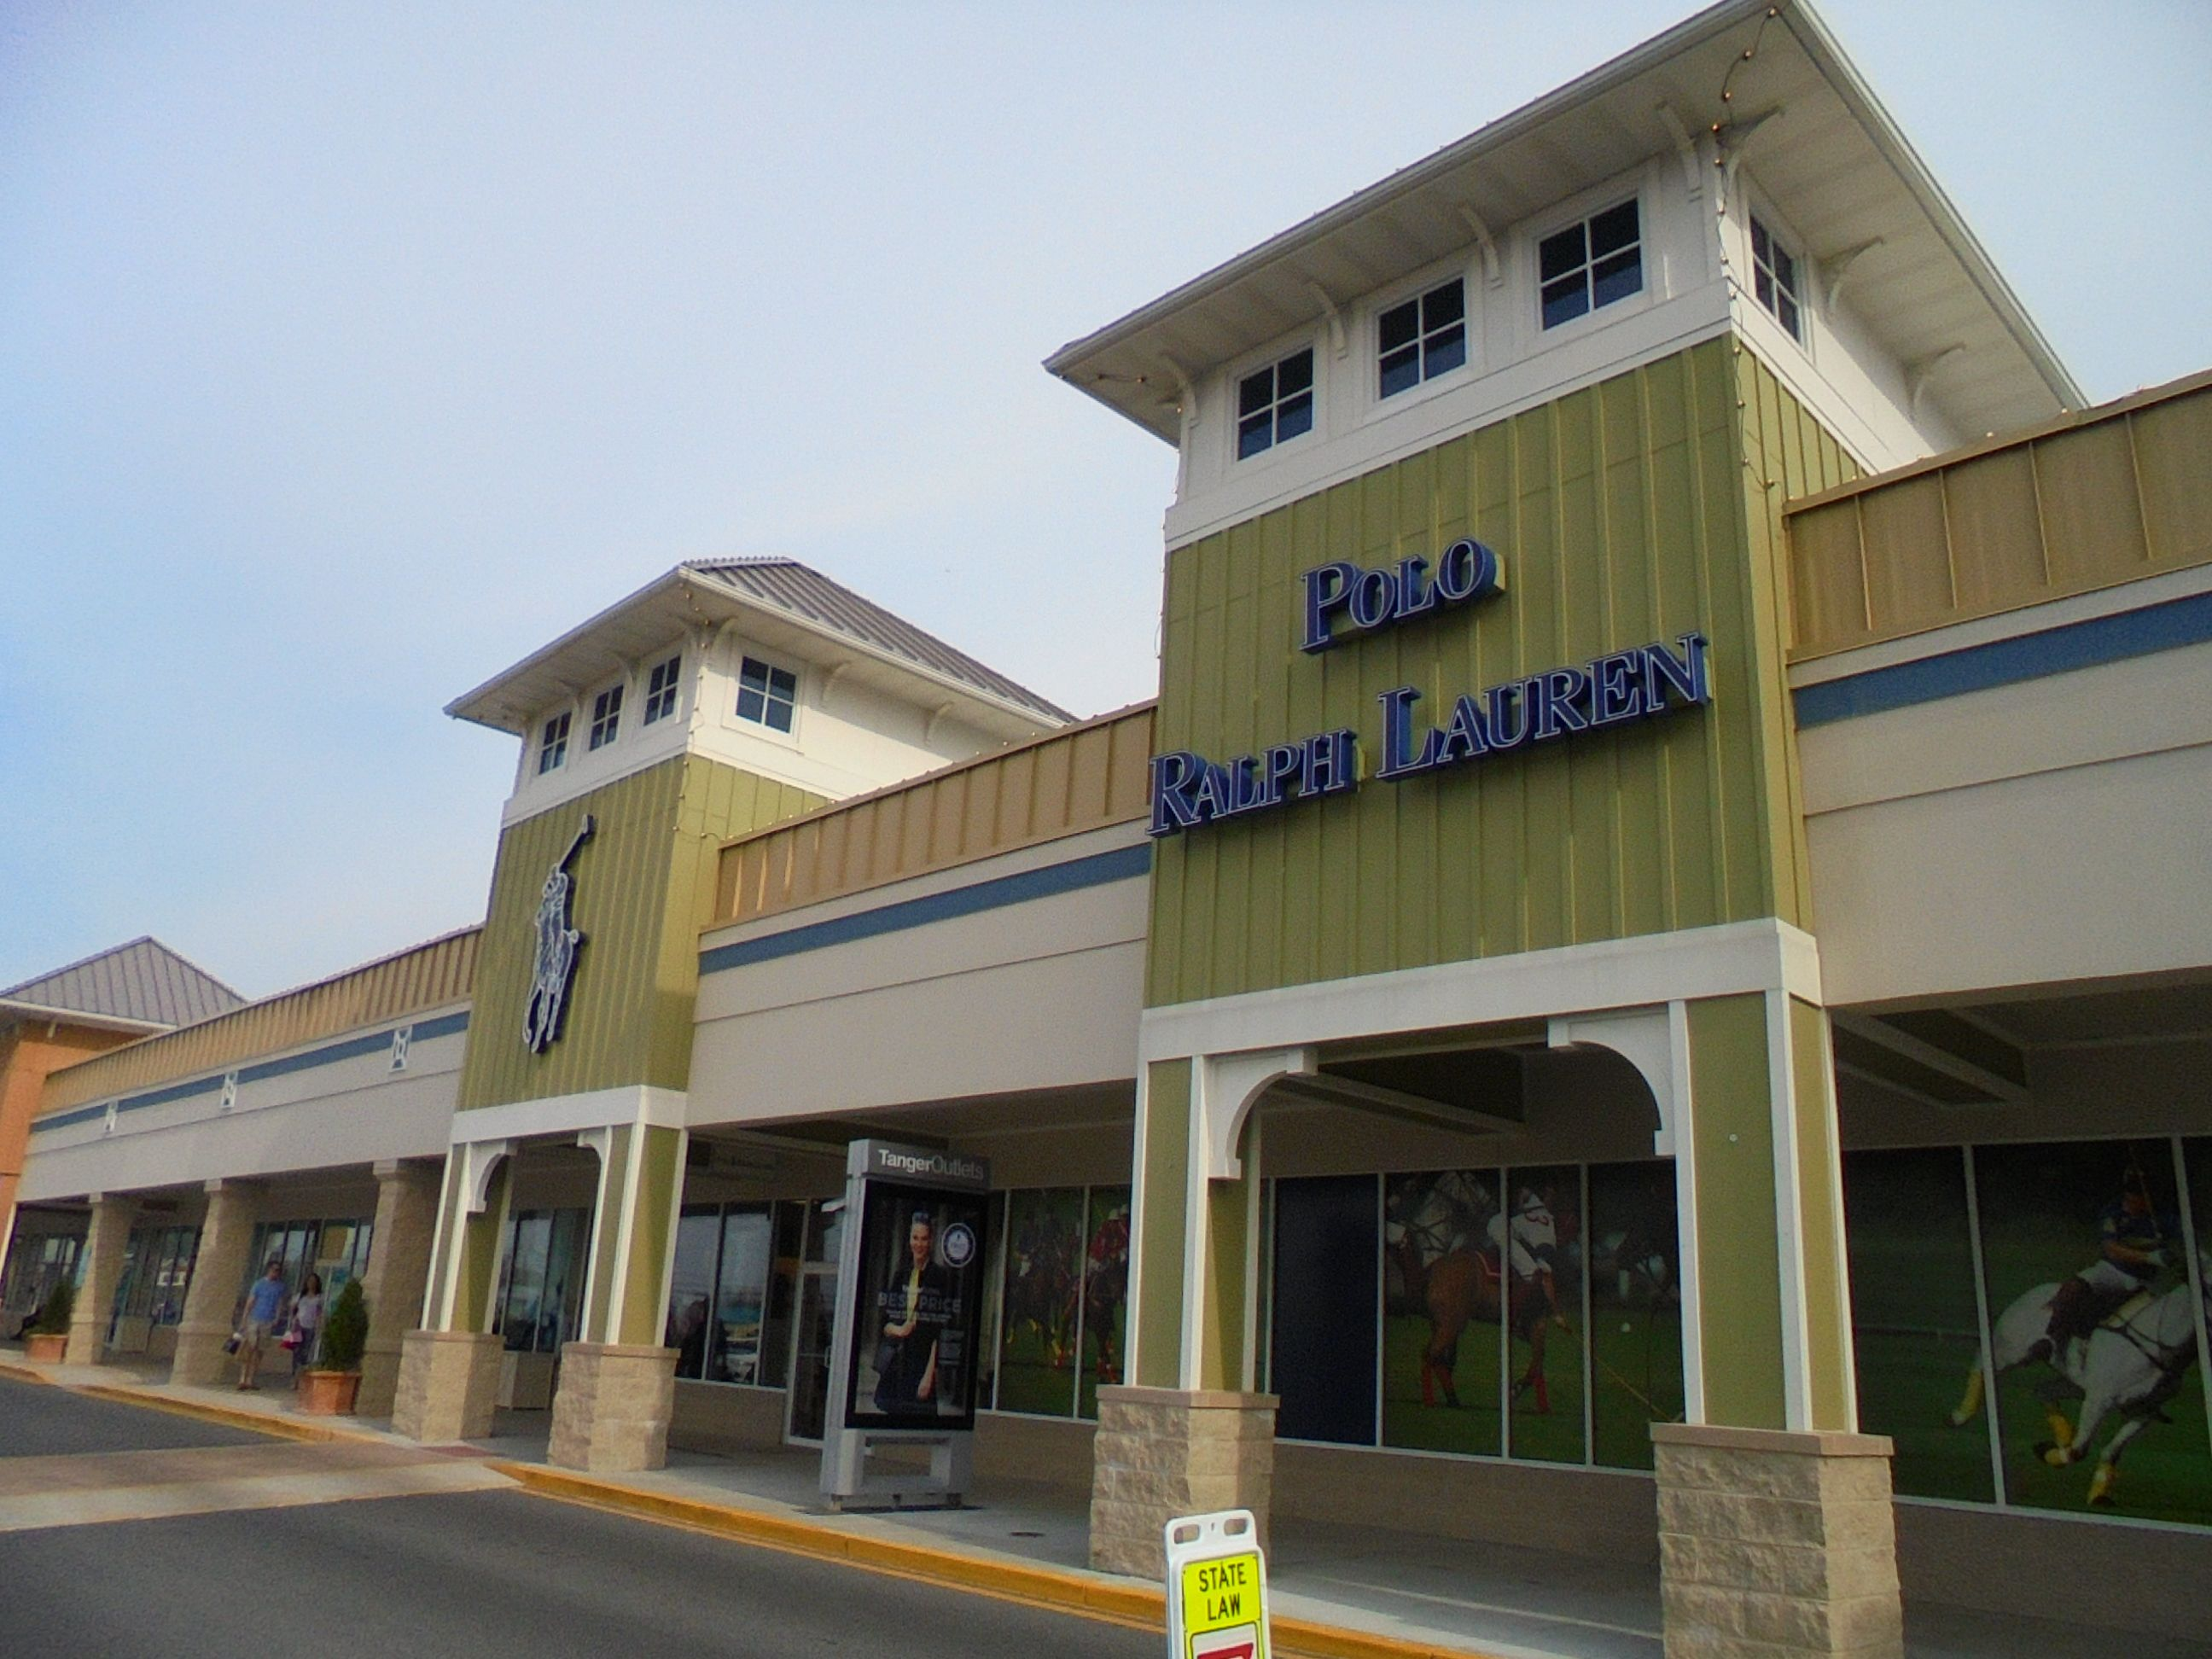 #Polo #factorystore in #RehobothBeach #Delaware down the block from more #TangerOutlets - http://www.drewrynewsnetwork.com